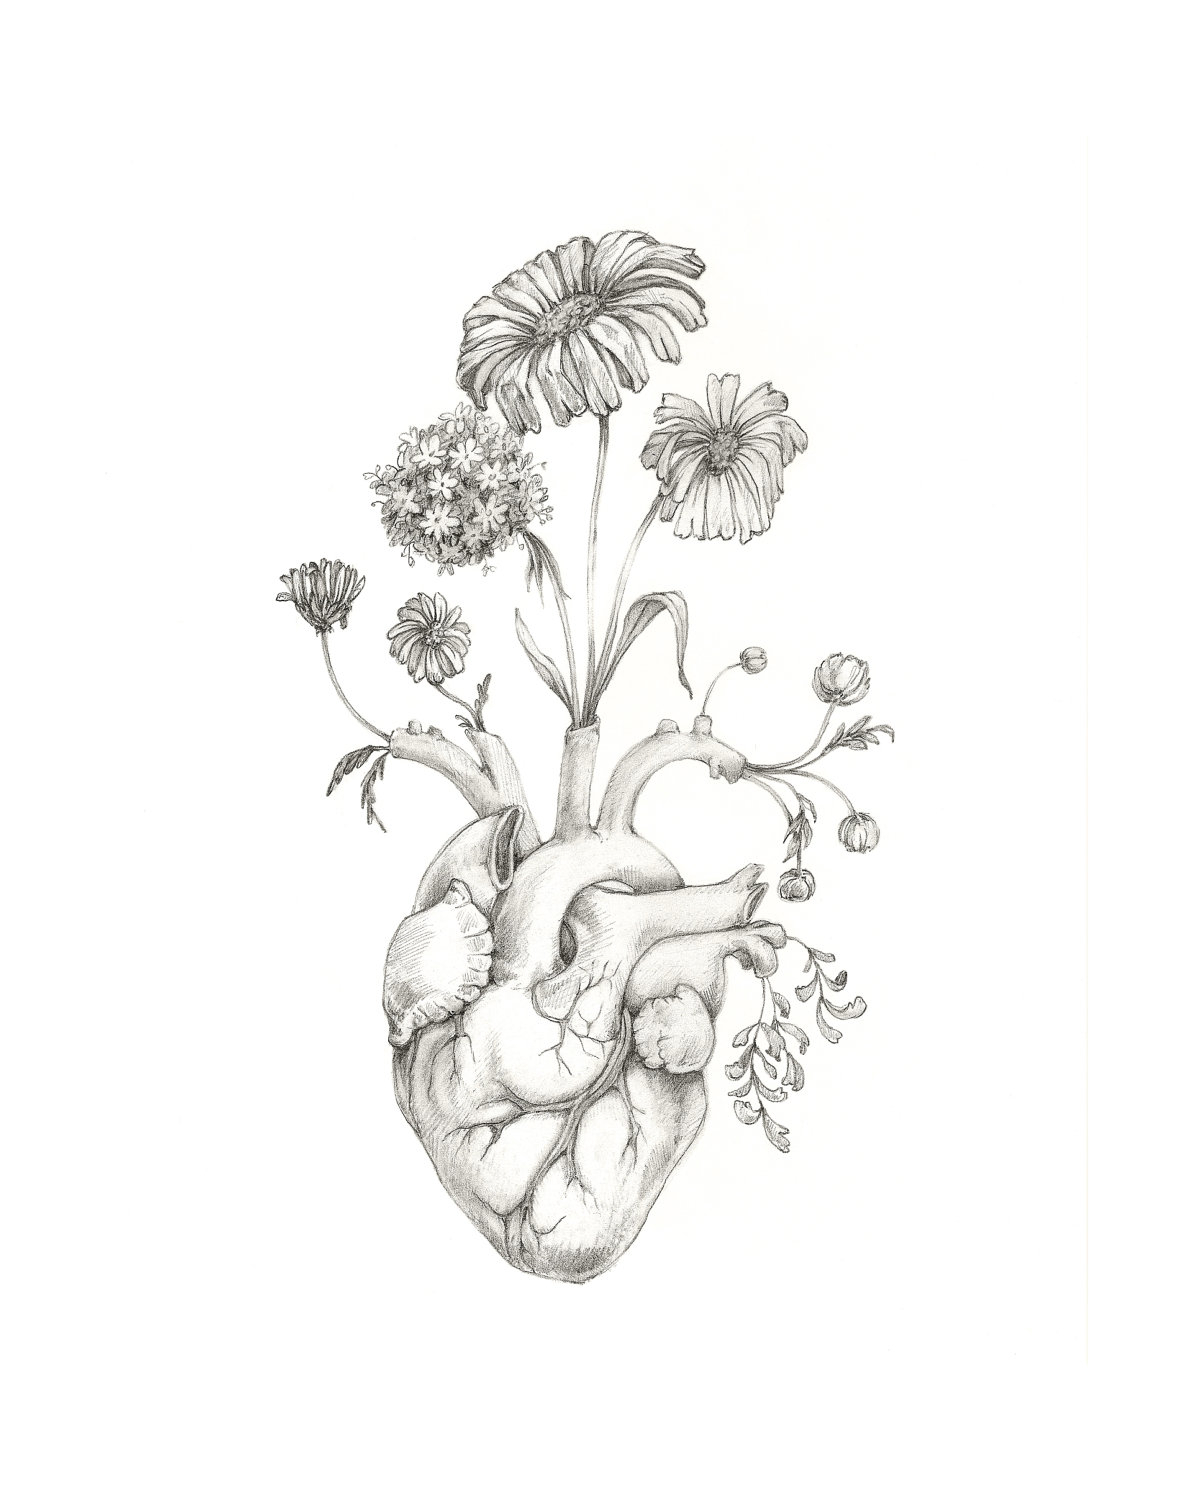 Anatomical Heart Sketch At Paintingvalley